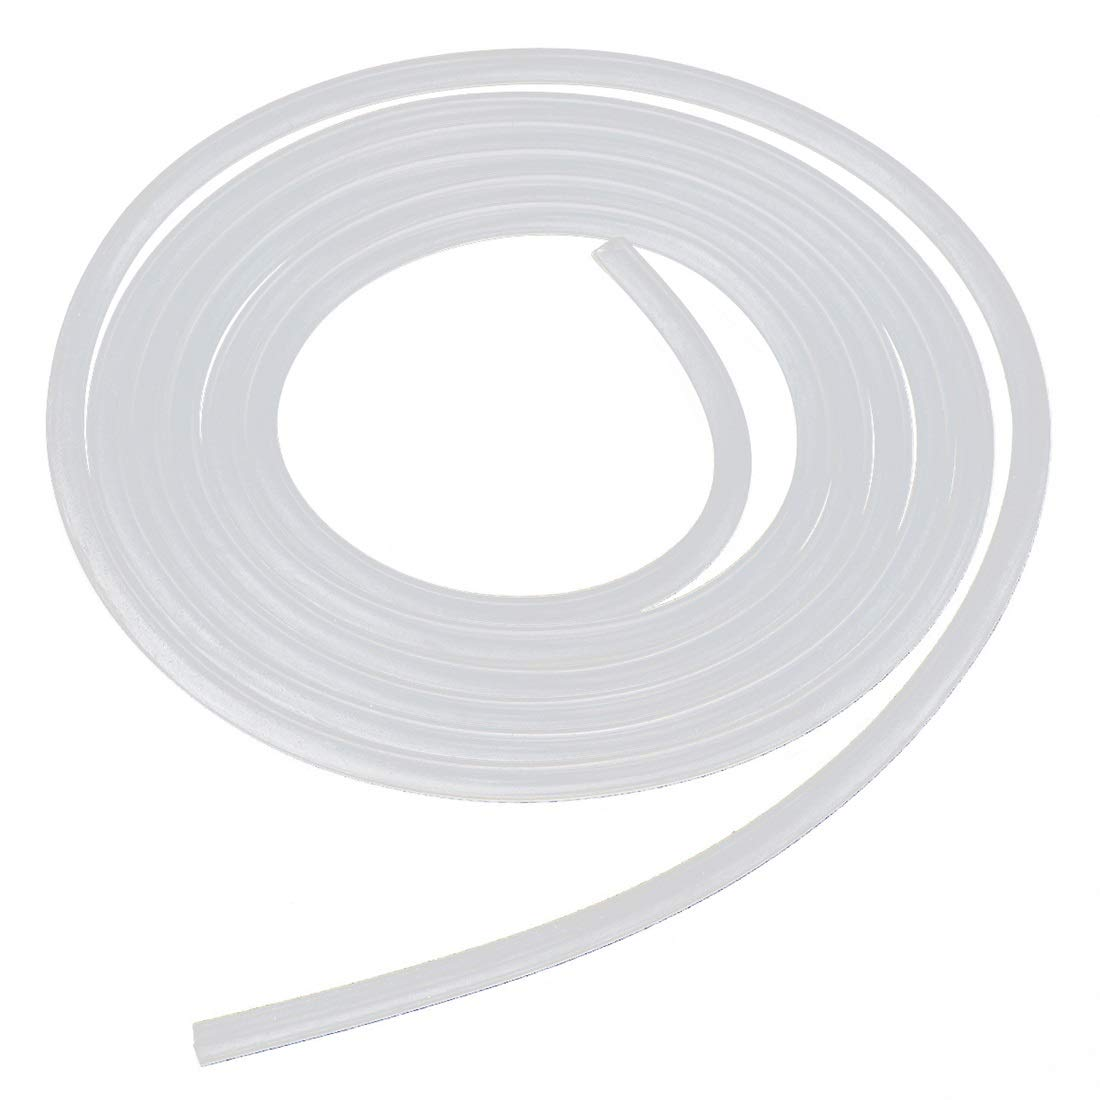 "5/16"" ID Silicon Tubing, JoyTube Food Grade Silicon Tubing 5/16"" ID x 7/16"" OD 50 Feet High Temp Pure Silicone Hose Tube for Home Brewing Winemaking"